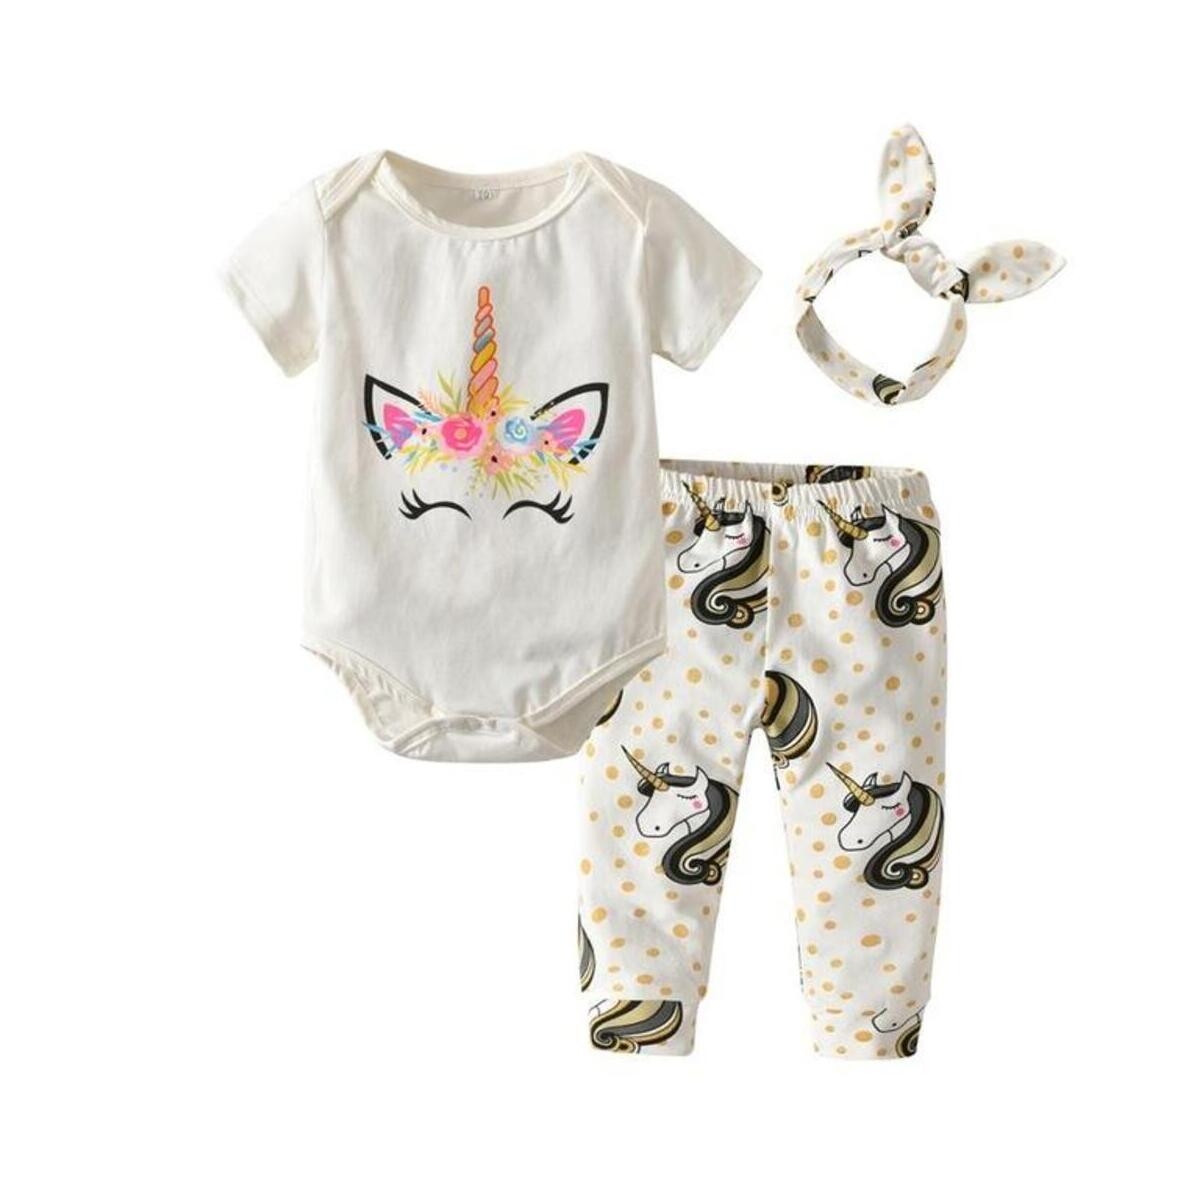 New born Girl Suits Letter print Outfits 2pcs Suits Infant Baby Girls 3PCS Baby Clothing